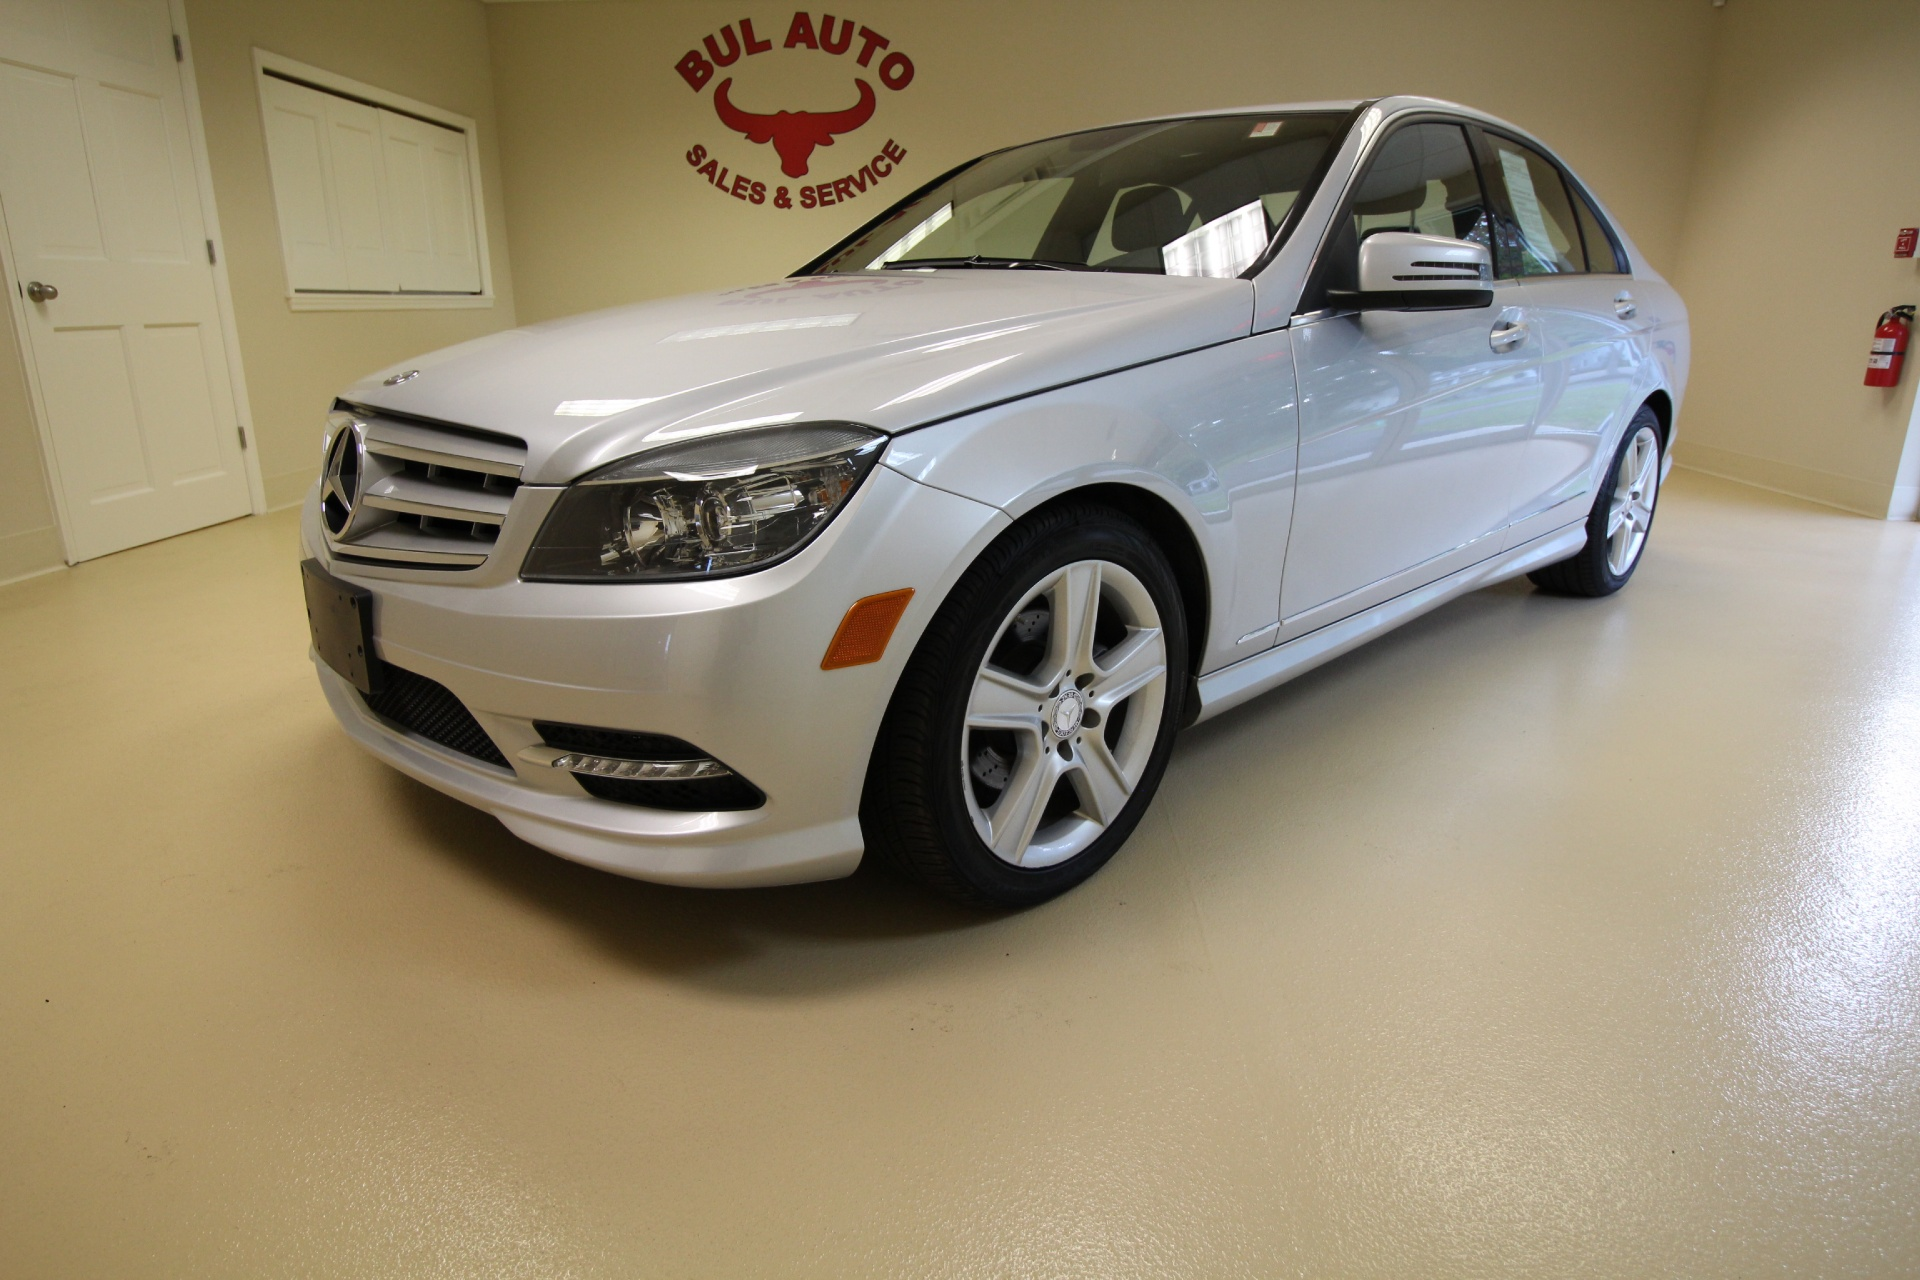 2011 Mercedes-Benz C-Class C300 Sport 4MATIC AWD SUPERB CONDITION Stock # 16234 for sale near ...